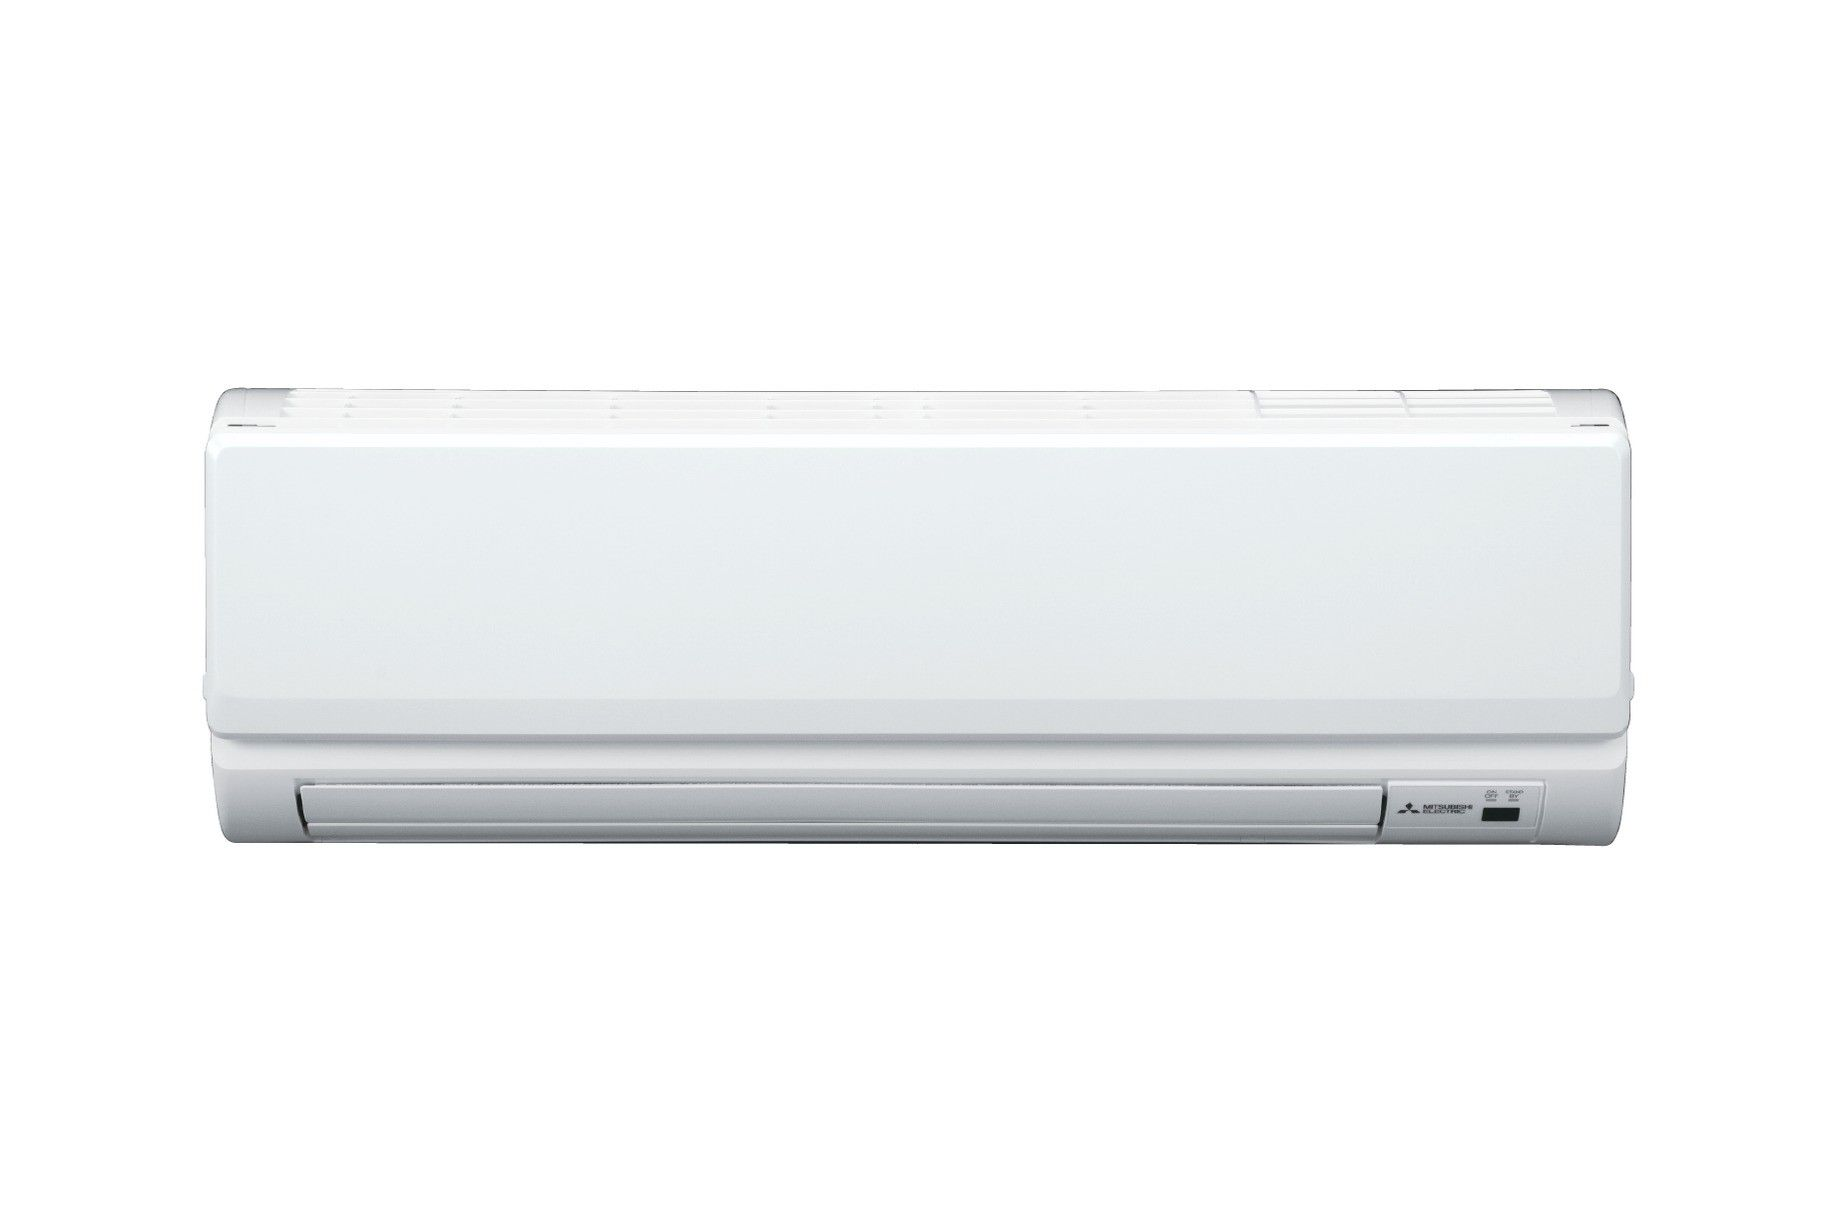 PKAA Wall Mounted Indoor Unit in Ductless AC Components Ductless AC #5F6C6C